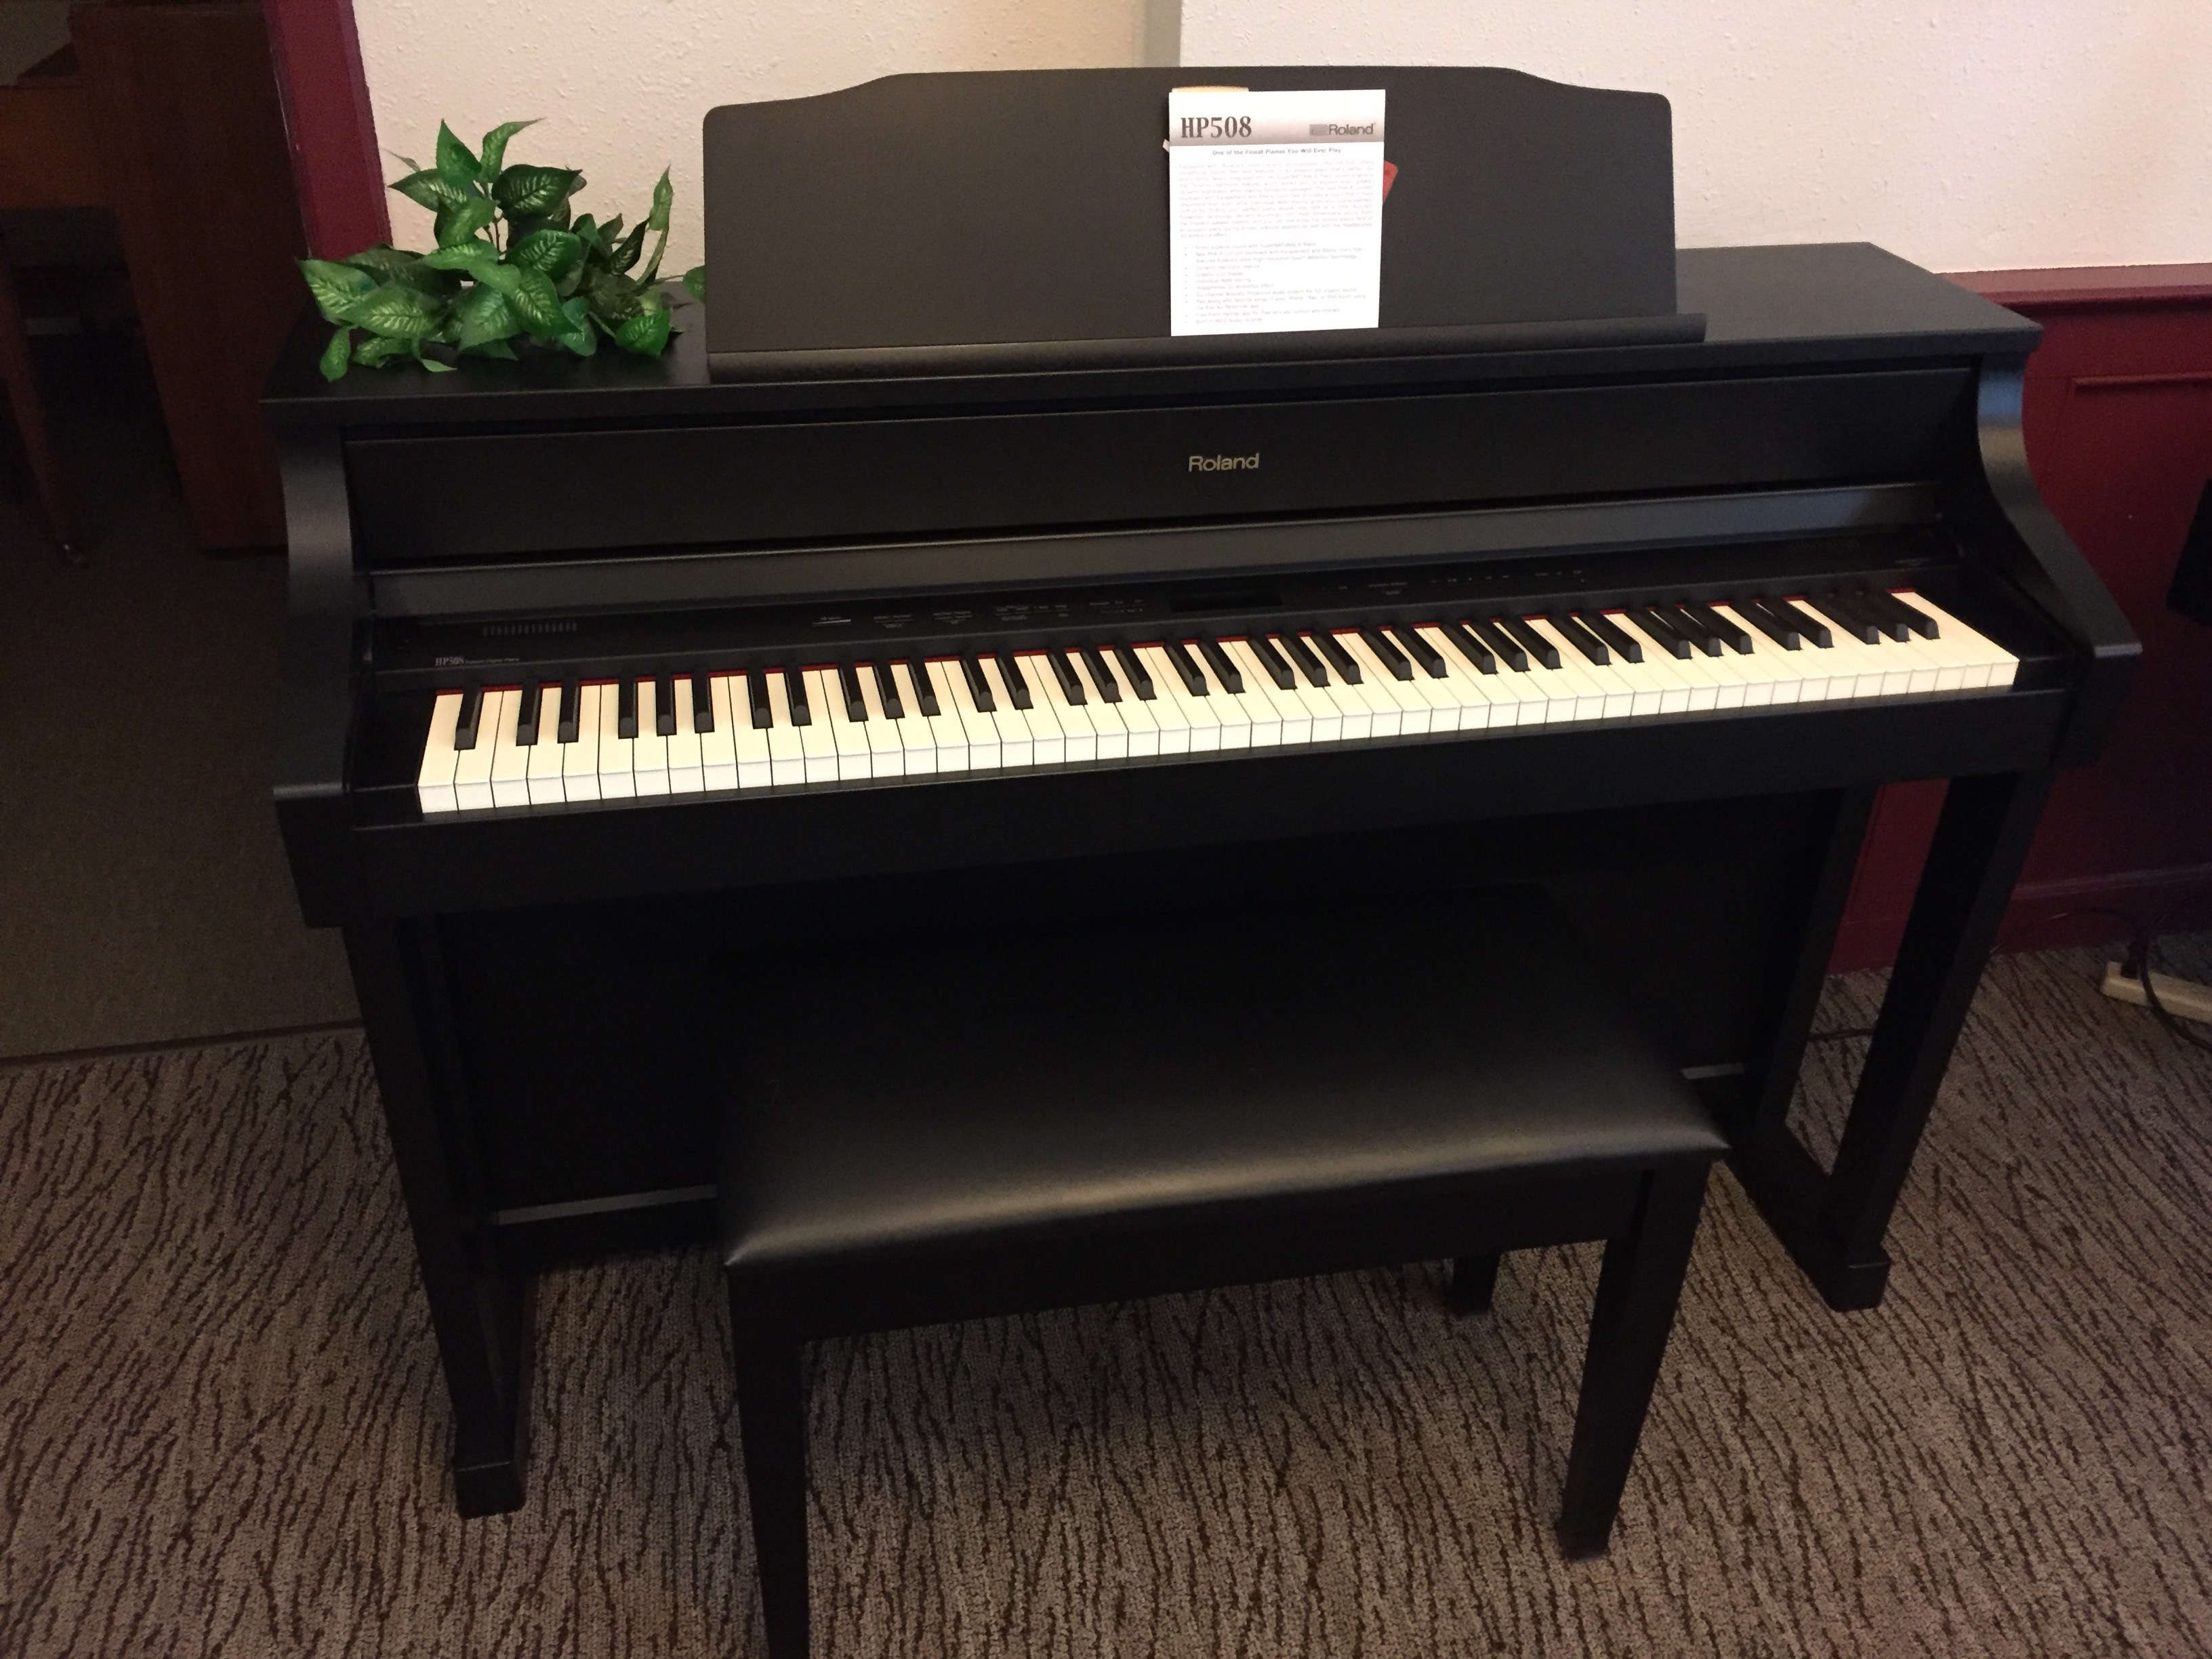 Professionally Prepared Used Pianos | Music City Spokane